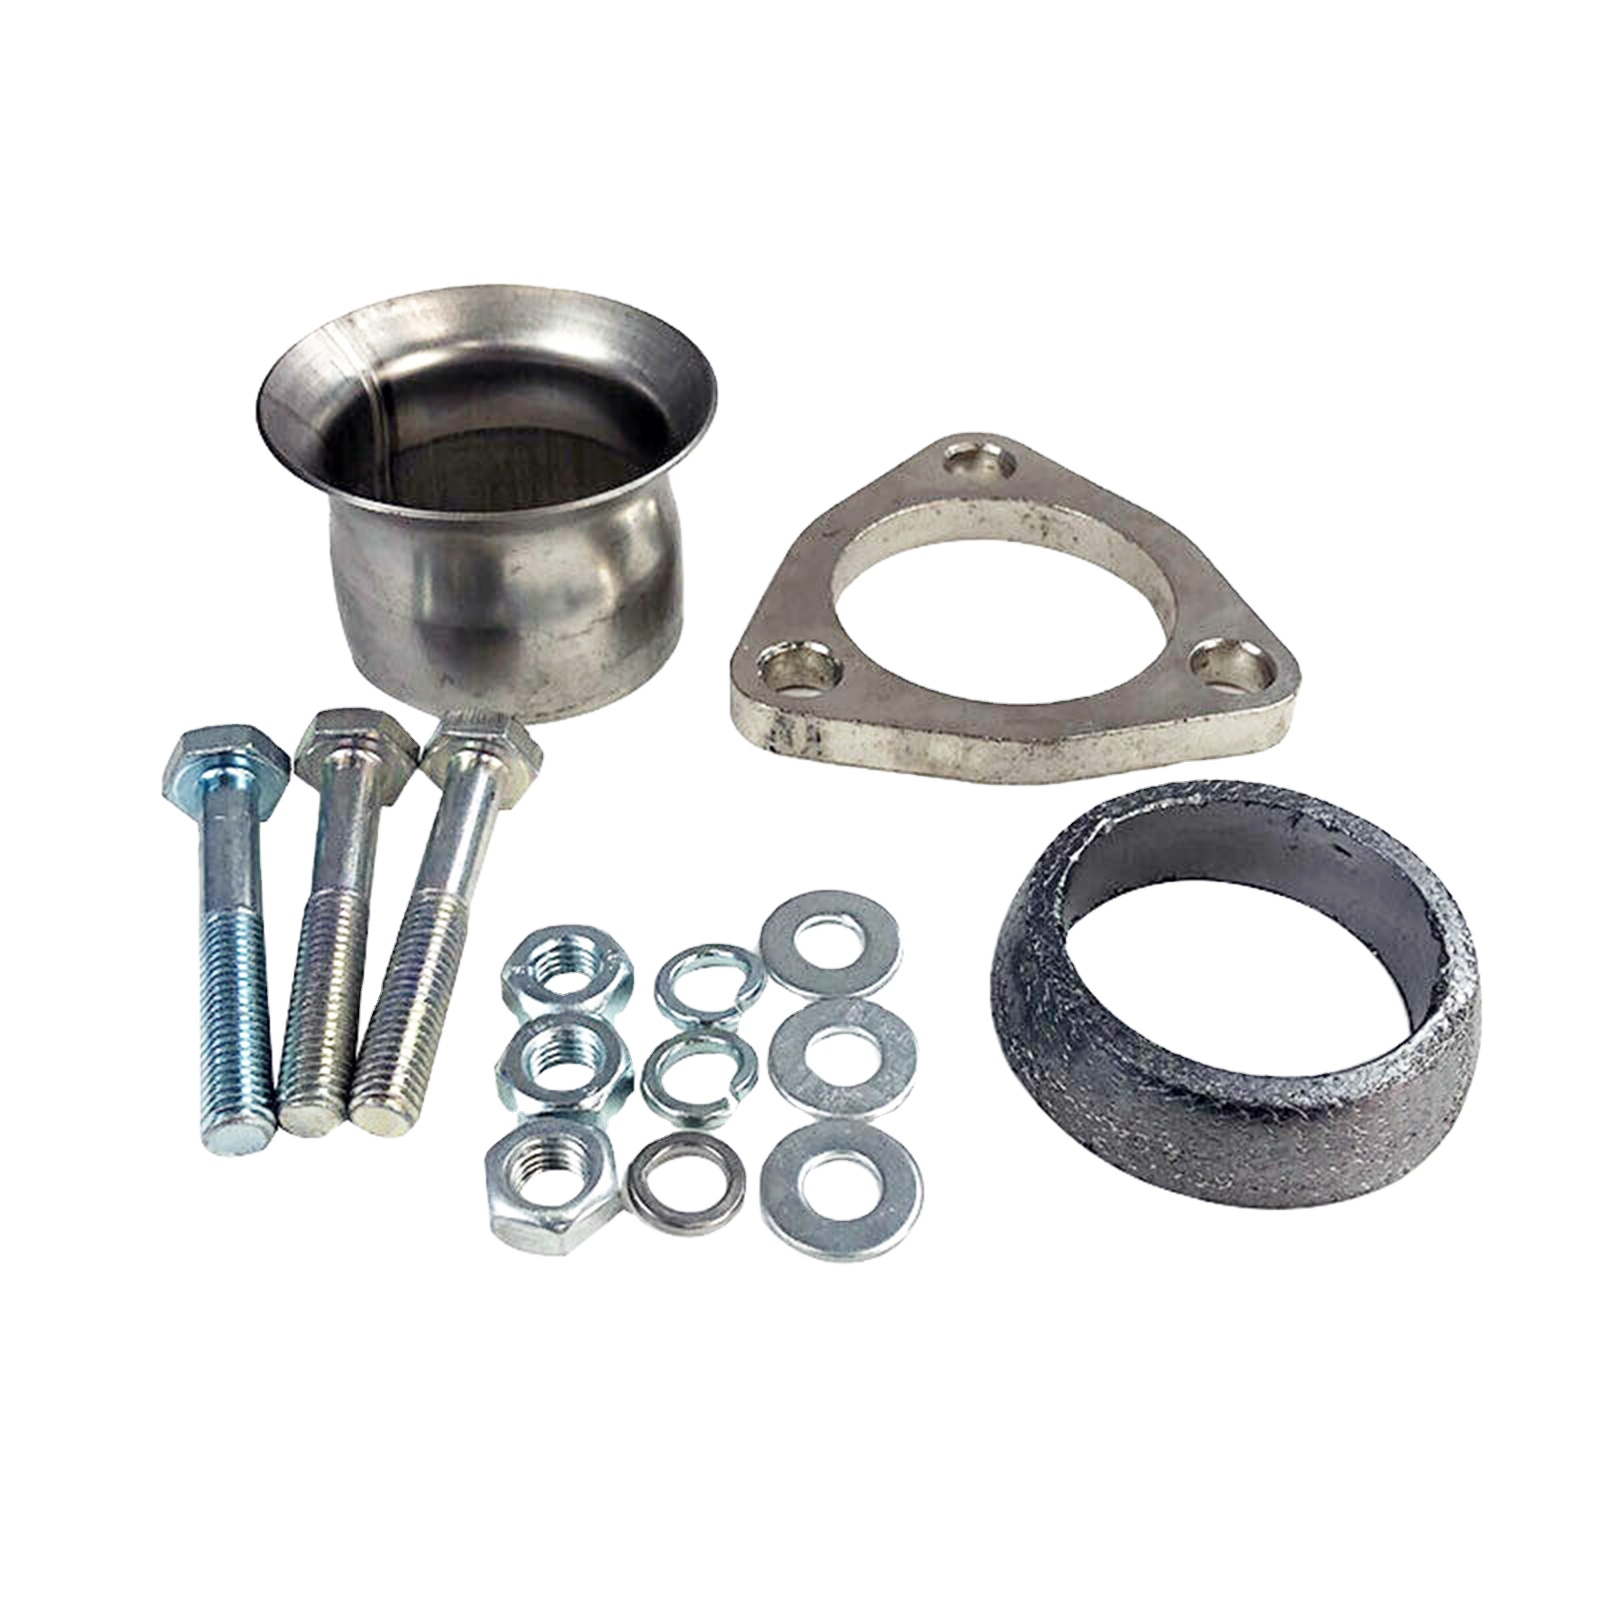 new 2 1 4 semi direct fit exhaust flared y pipe triangle flange repair kit buy flange repair kit exhaust flared 2 1 4 semi direct fit product on